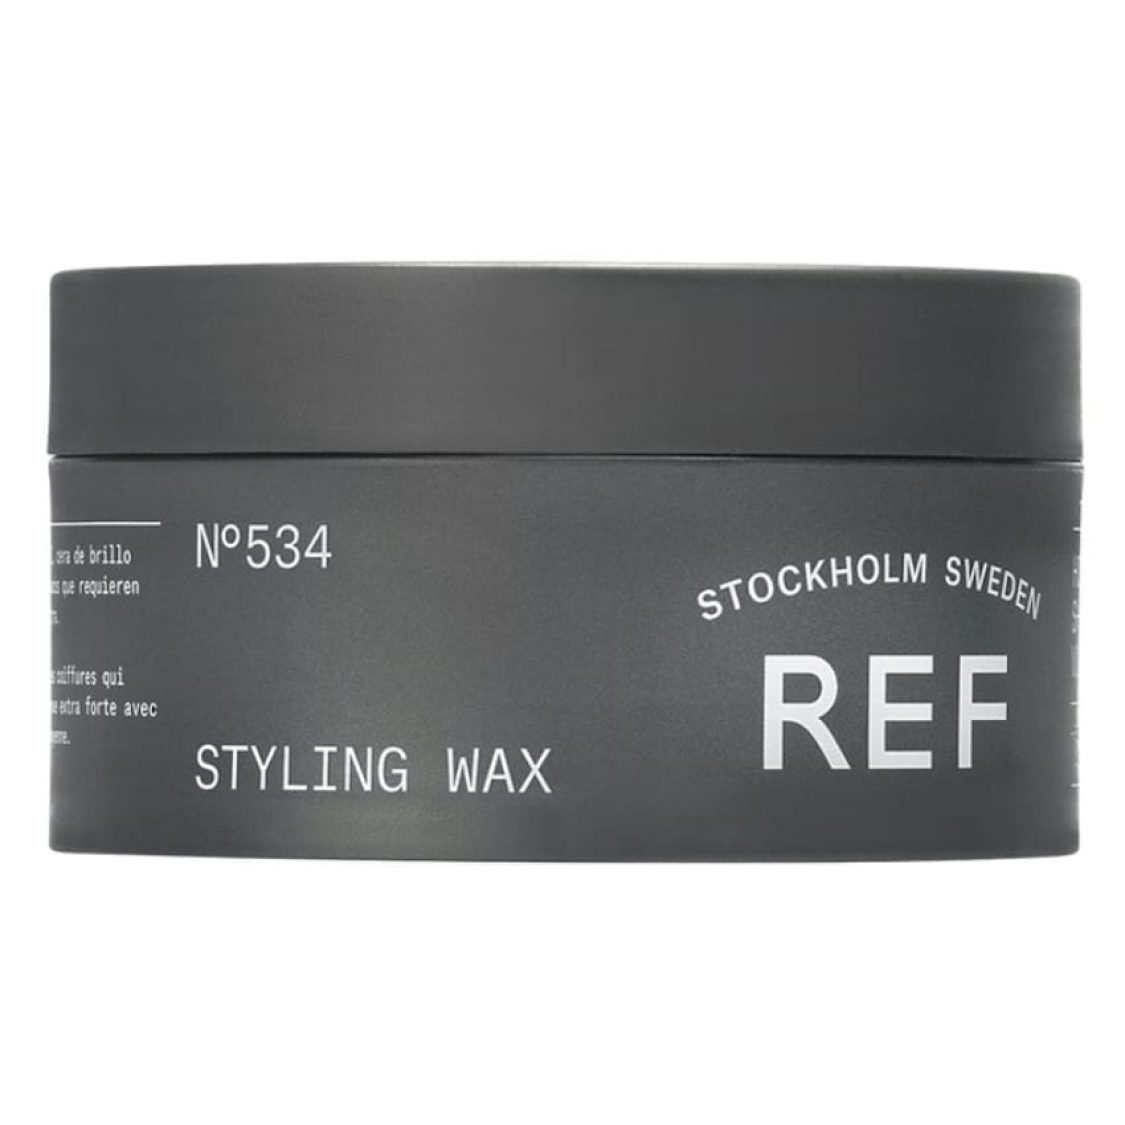 REF - Styling Wax 85ml